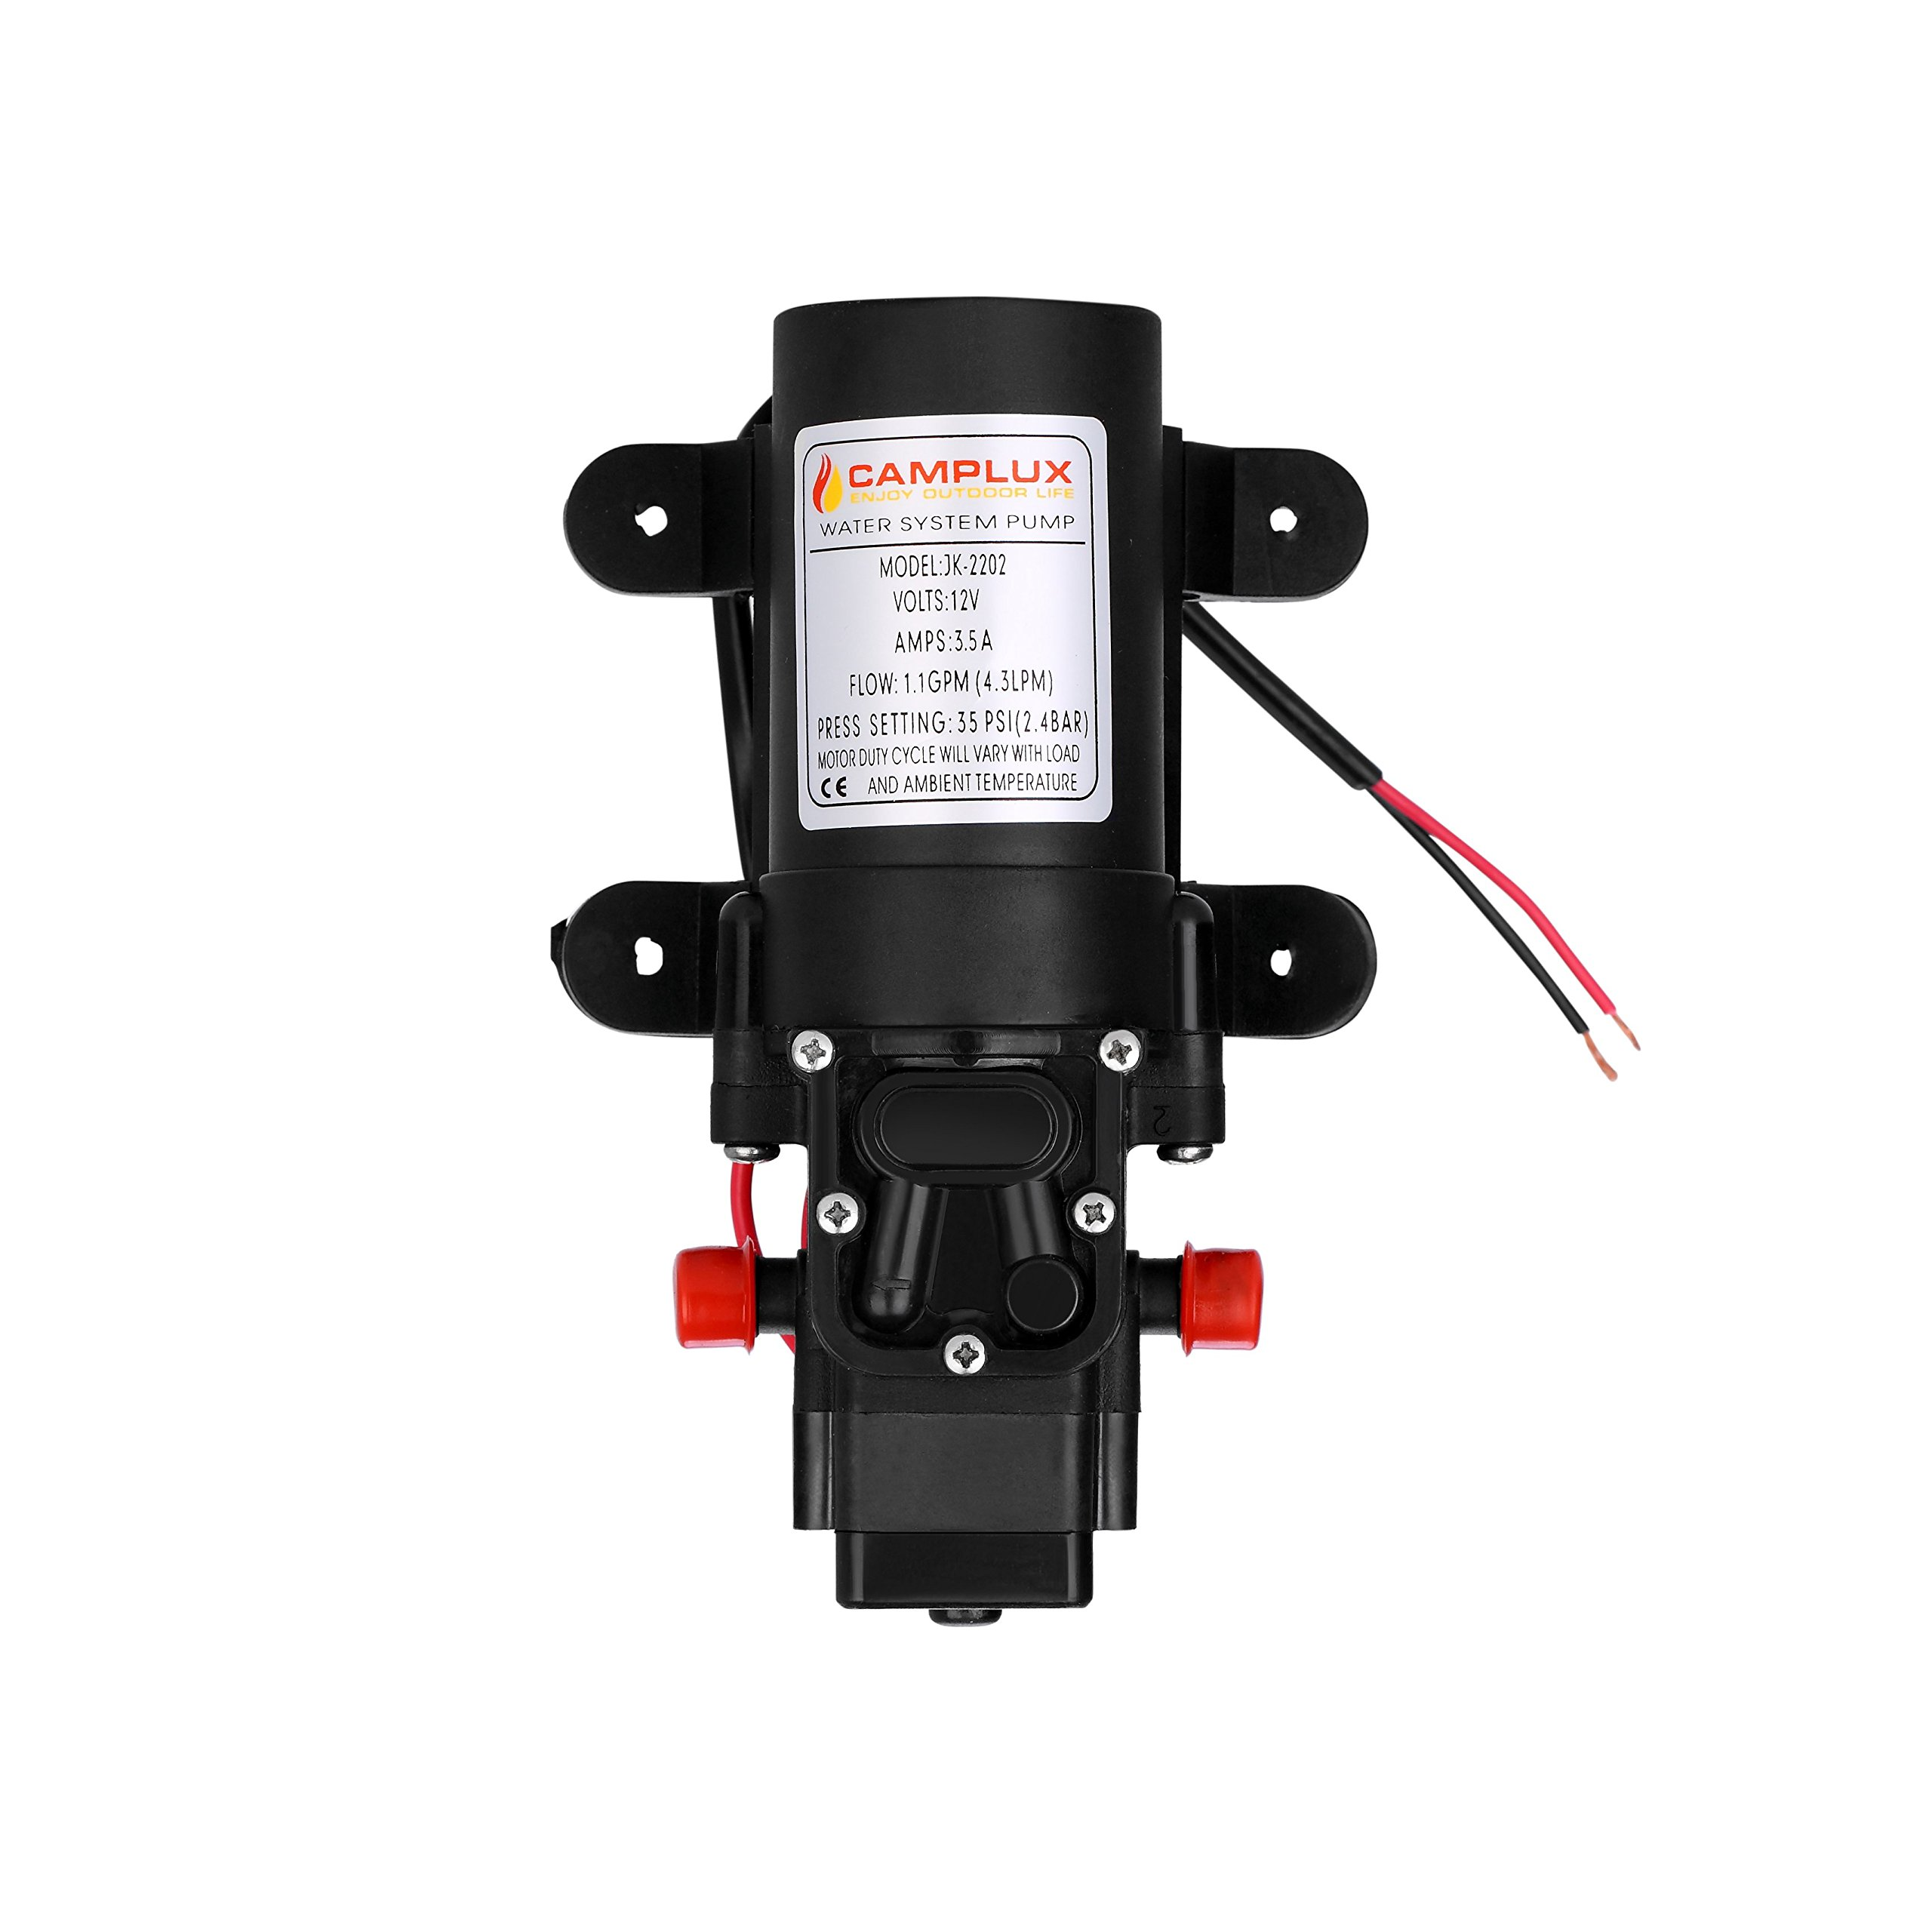 Camplux 12V Water Pump 35PSI DC 1.2GPM 4.3LPM Diaphragm for Caravan RV Marine Fishing Boat by CAMPLUX ENJOY OUTDOOR LIFE